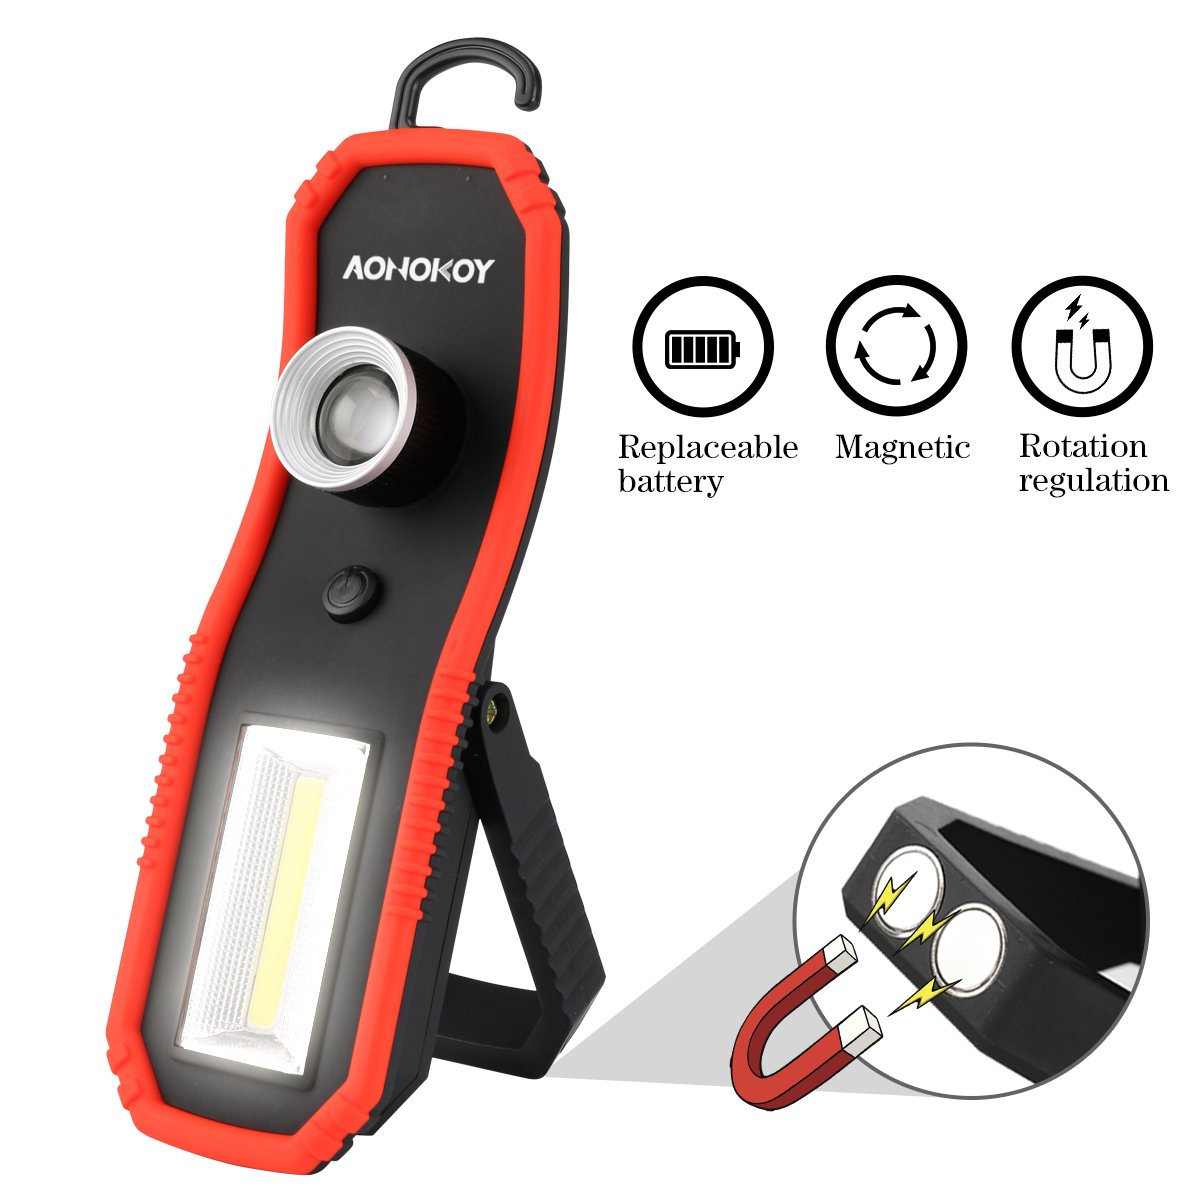 Portable LED Work Lights,Focus Function Multi-use 100LM XPE LED and 200LM COB,Waterproof Magnetic Base & Hanging Hook for Outdoor,Car Repairing, Blackout,Emergency,Travel and Indoor